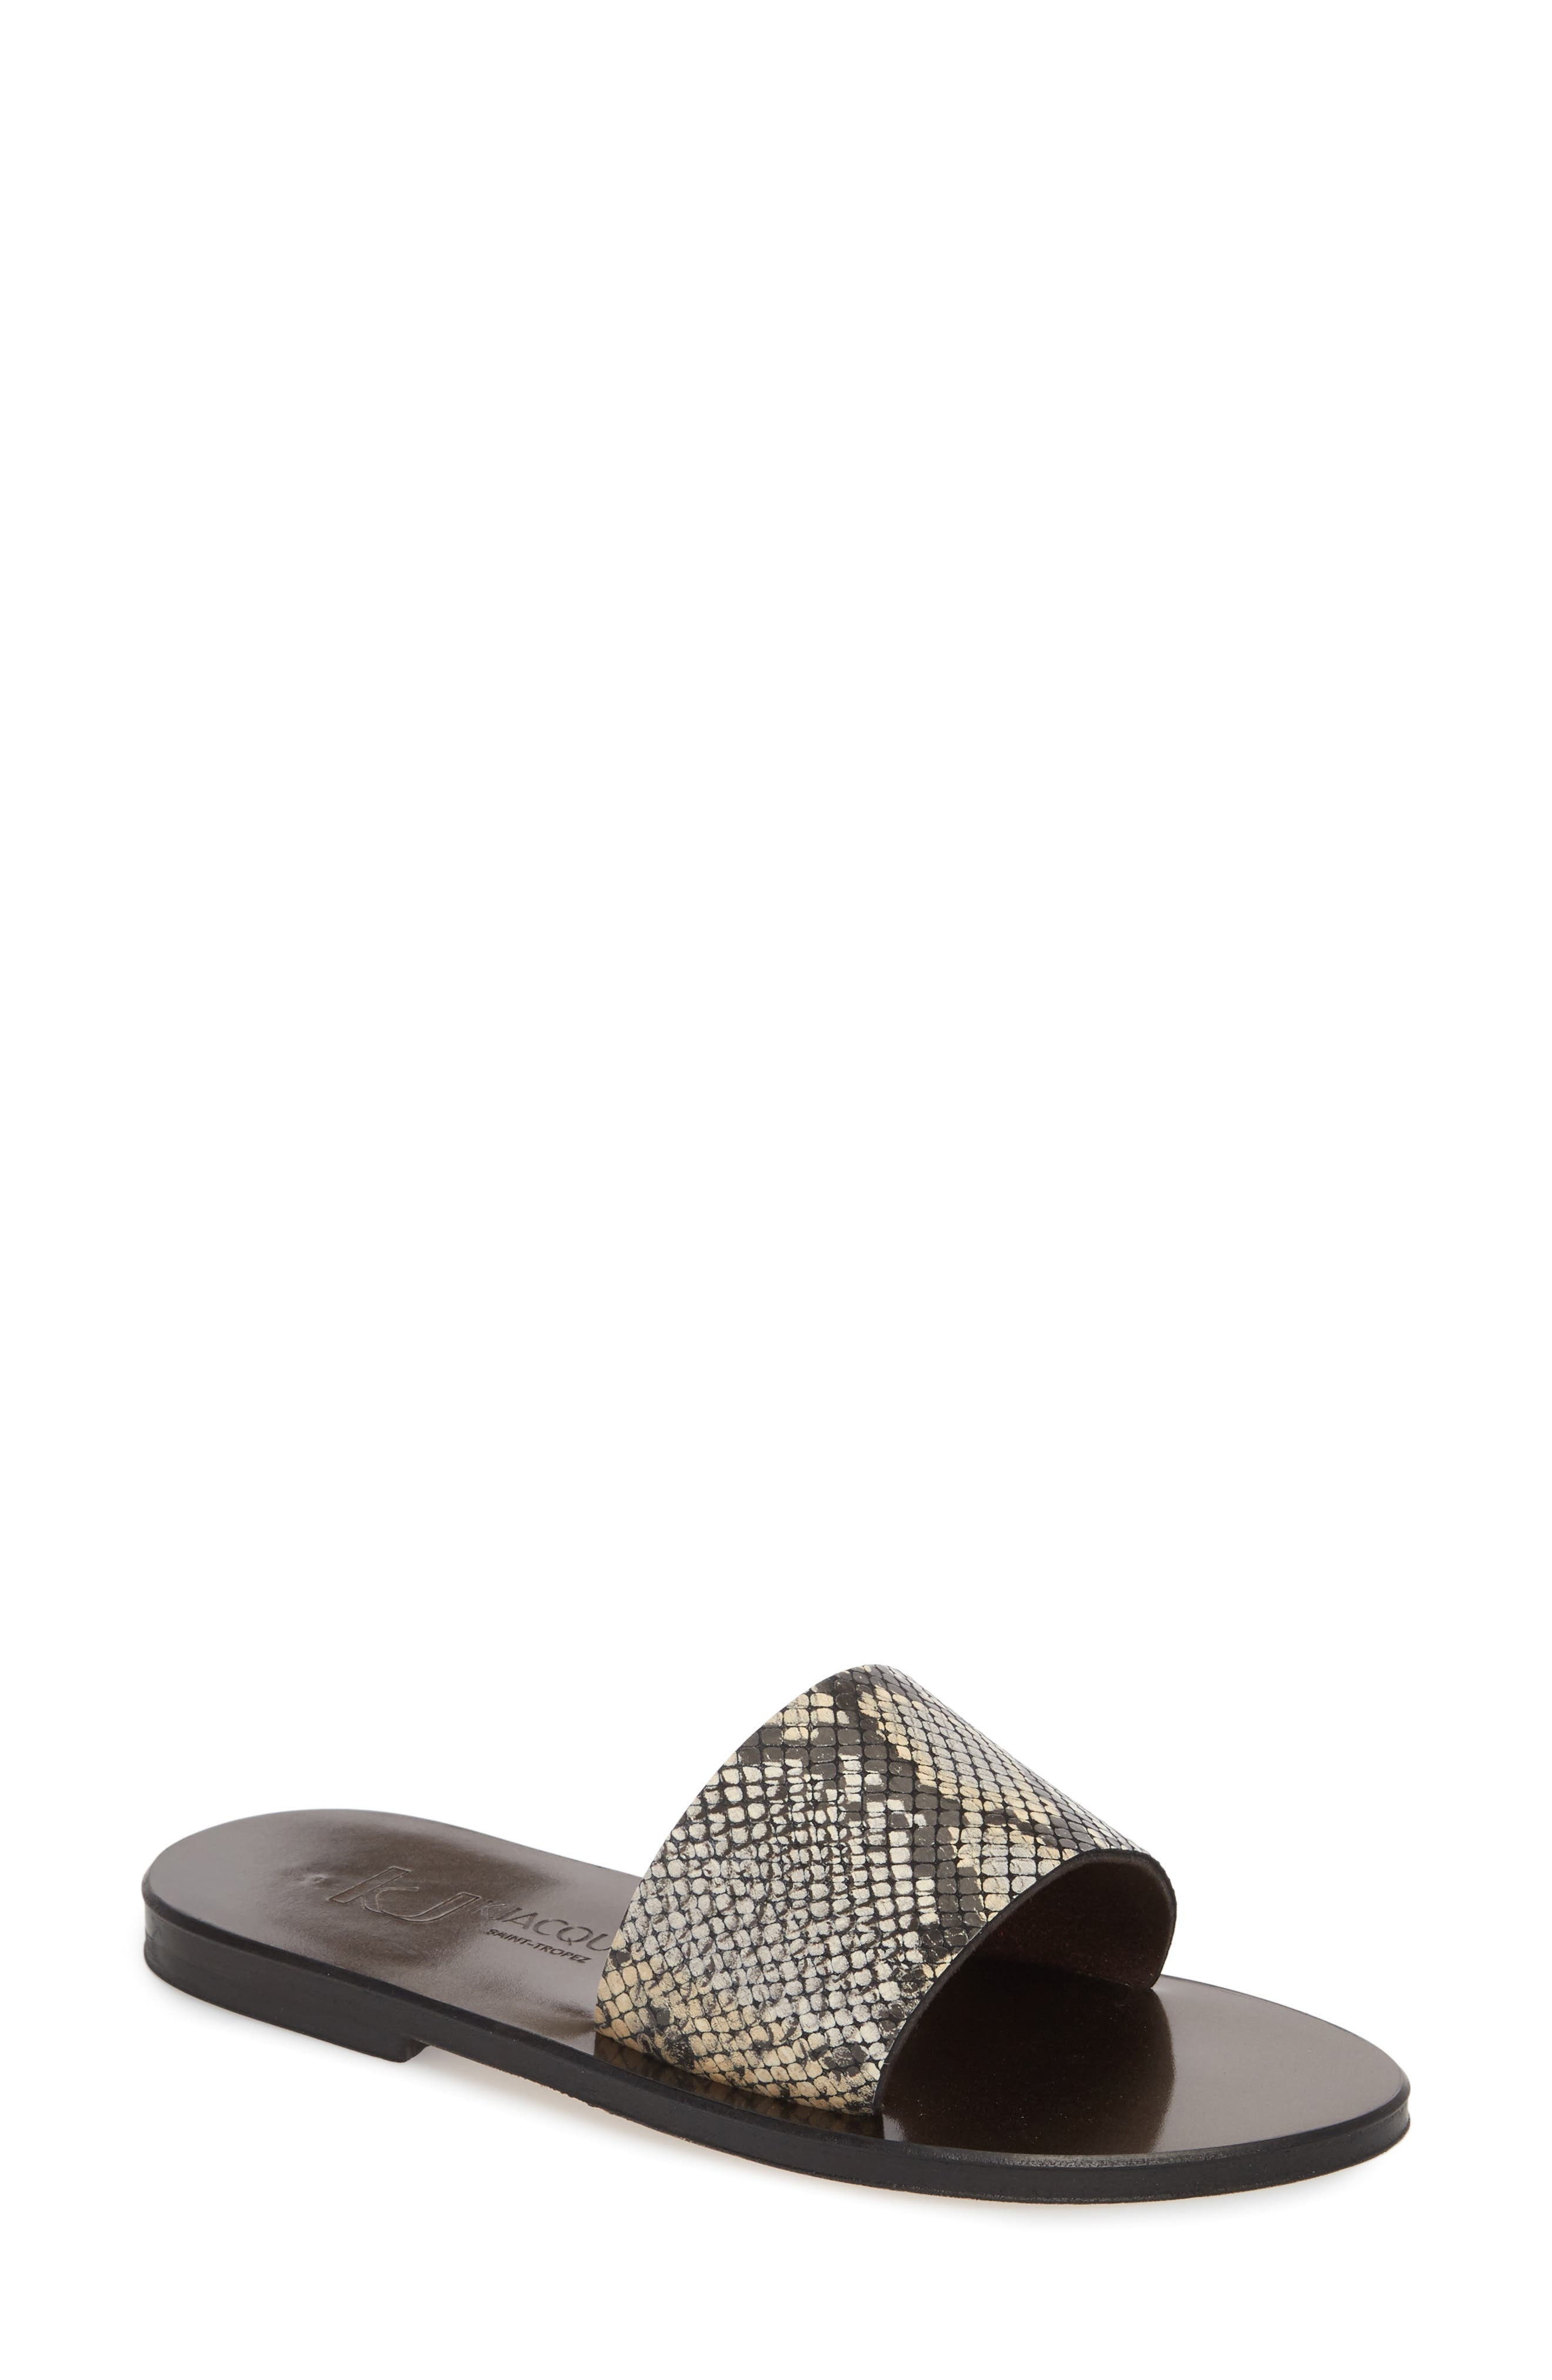 K. Jacques St. Tropez Arezzo Slide Sandal,                         Main,                         color, Noir Leather